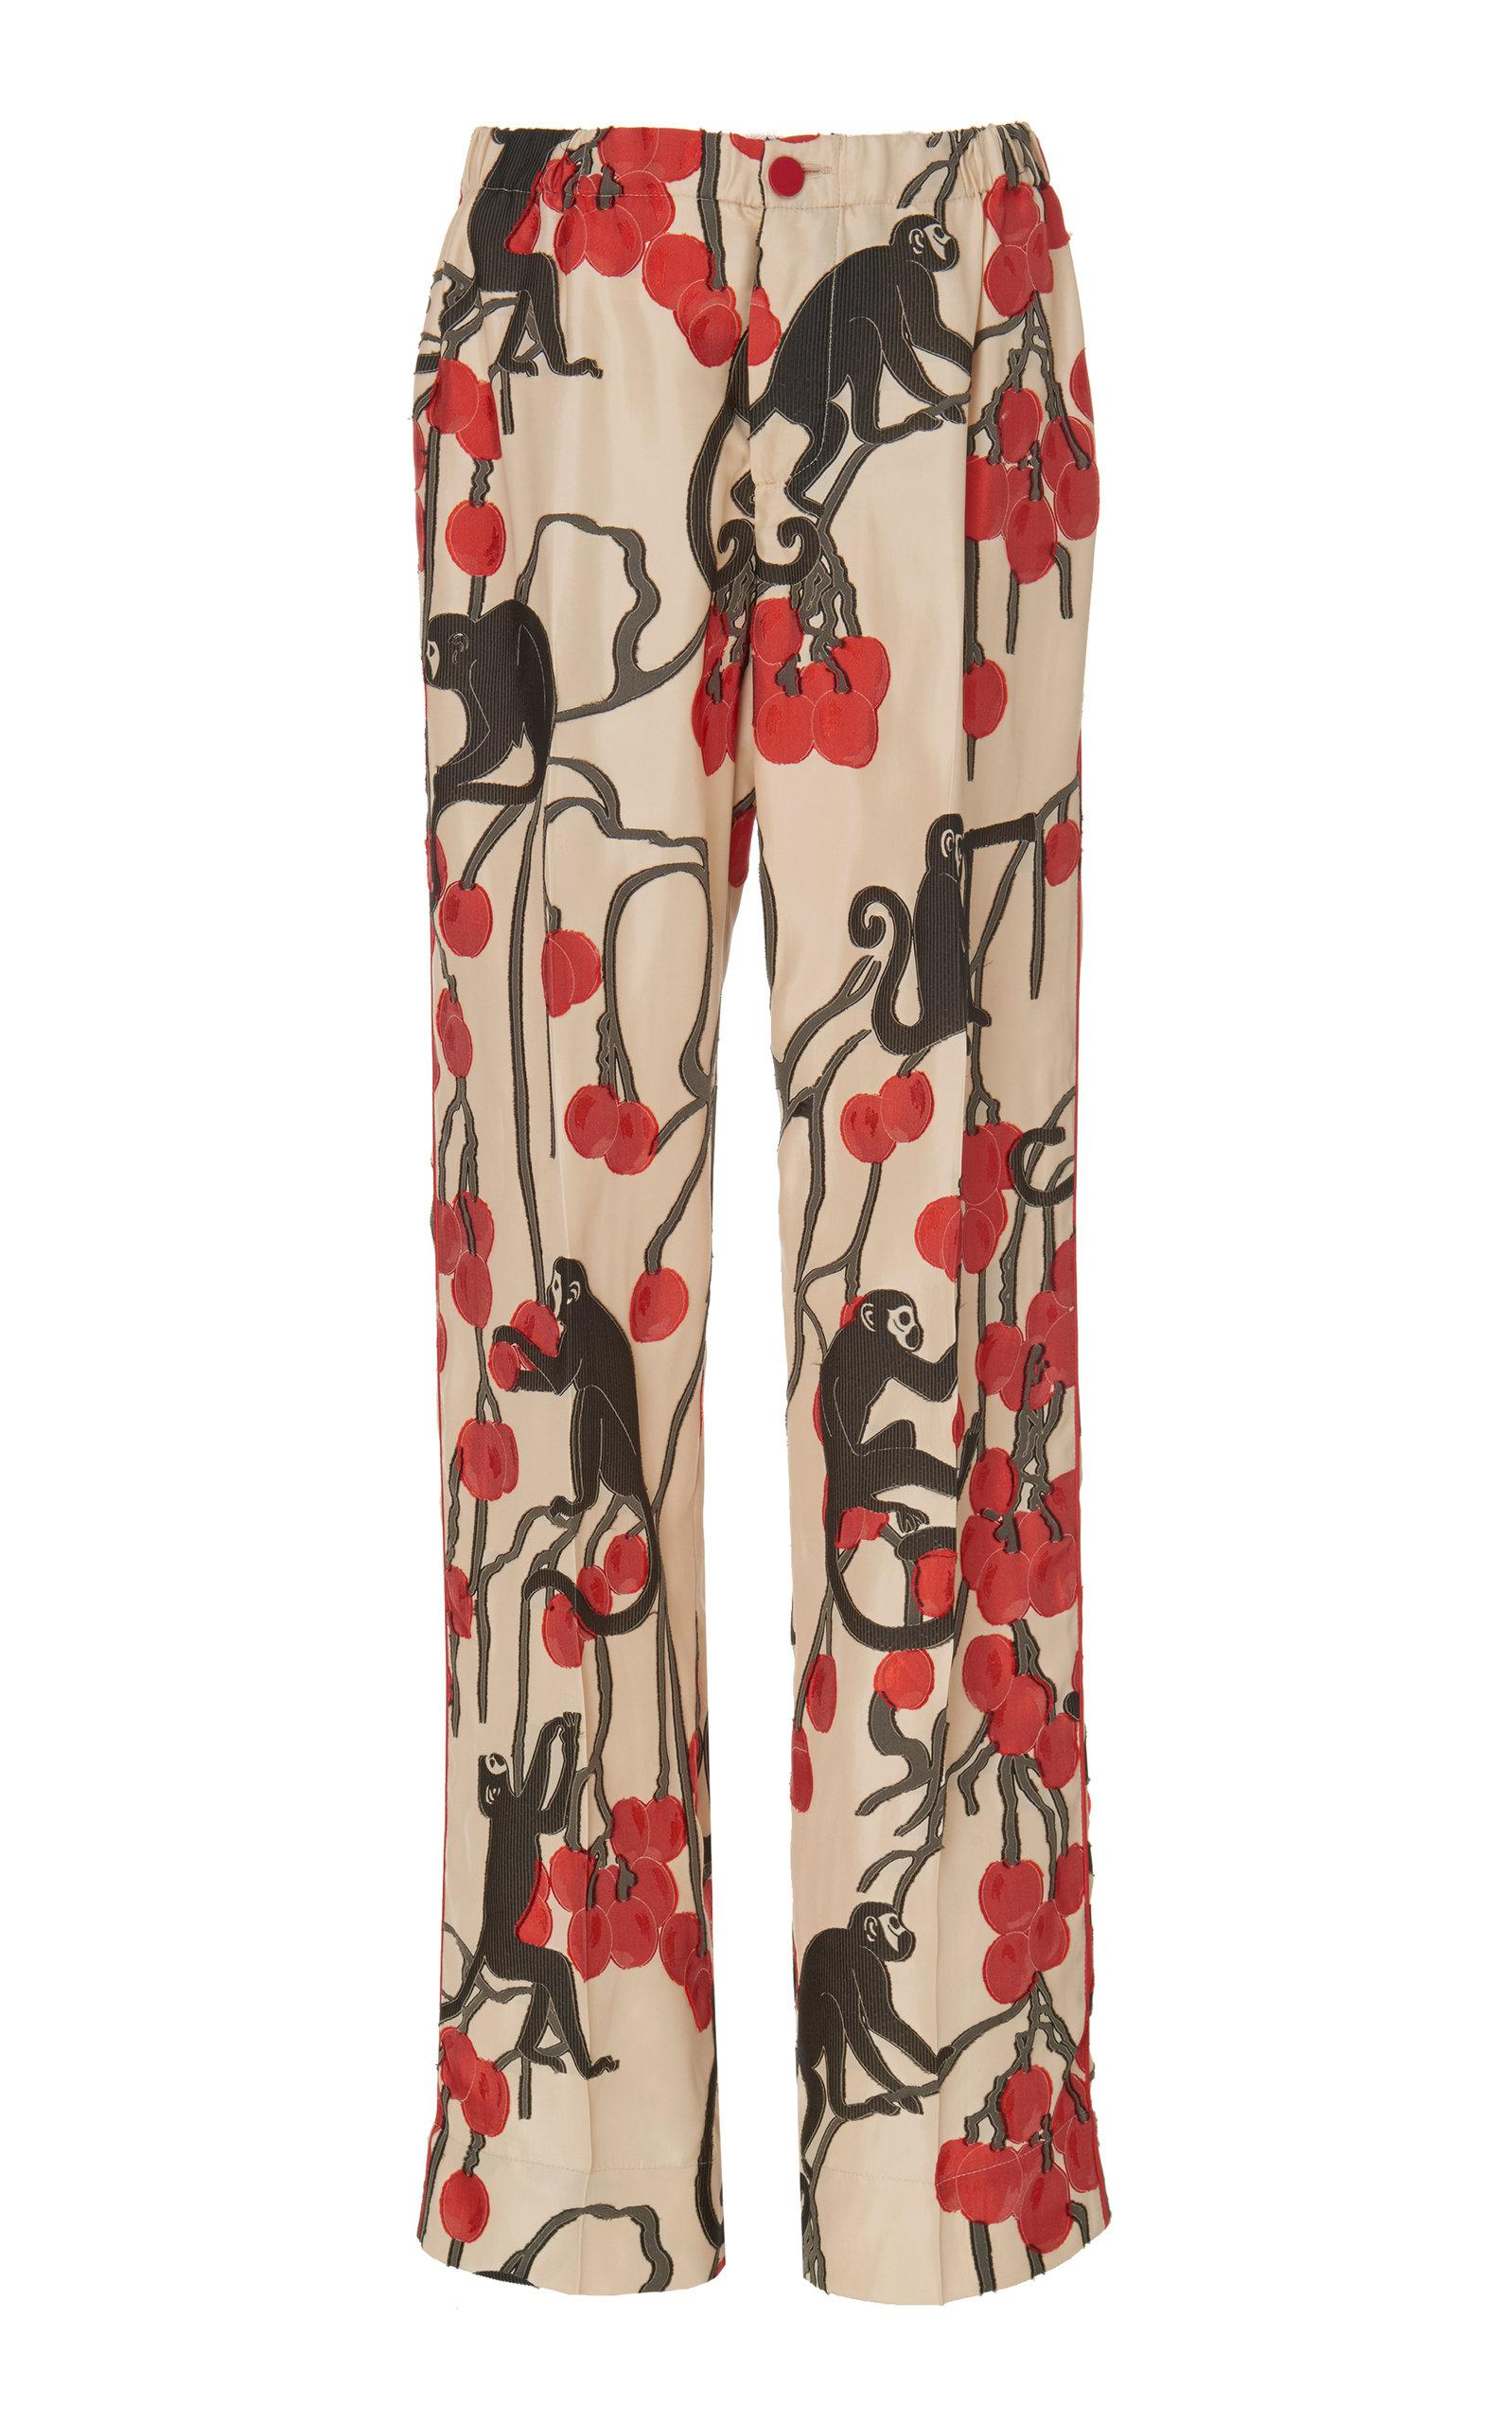 8def7817cfc9 Lyst - F.R.S For Restless Sleepers Etere 7° Silk-blend Pants in Red